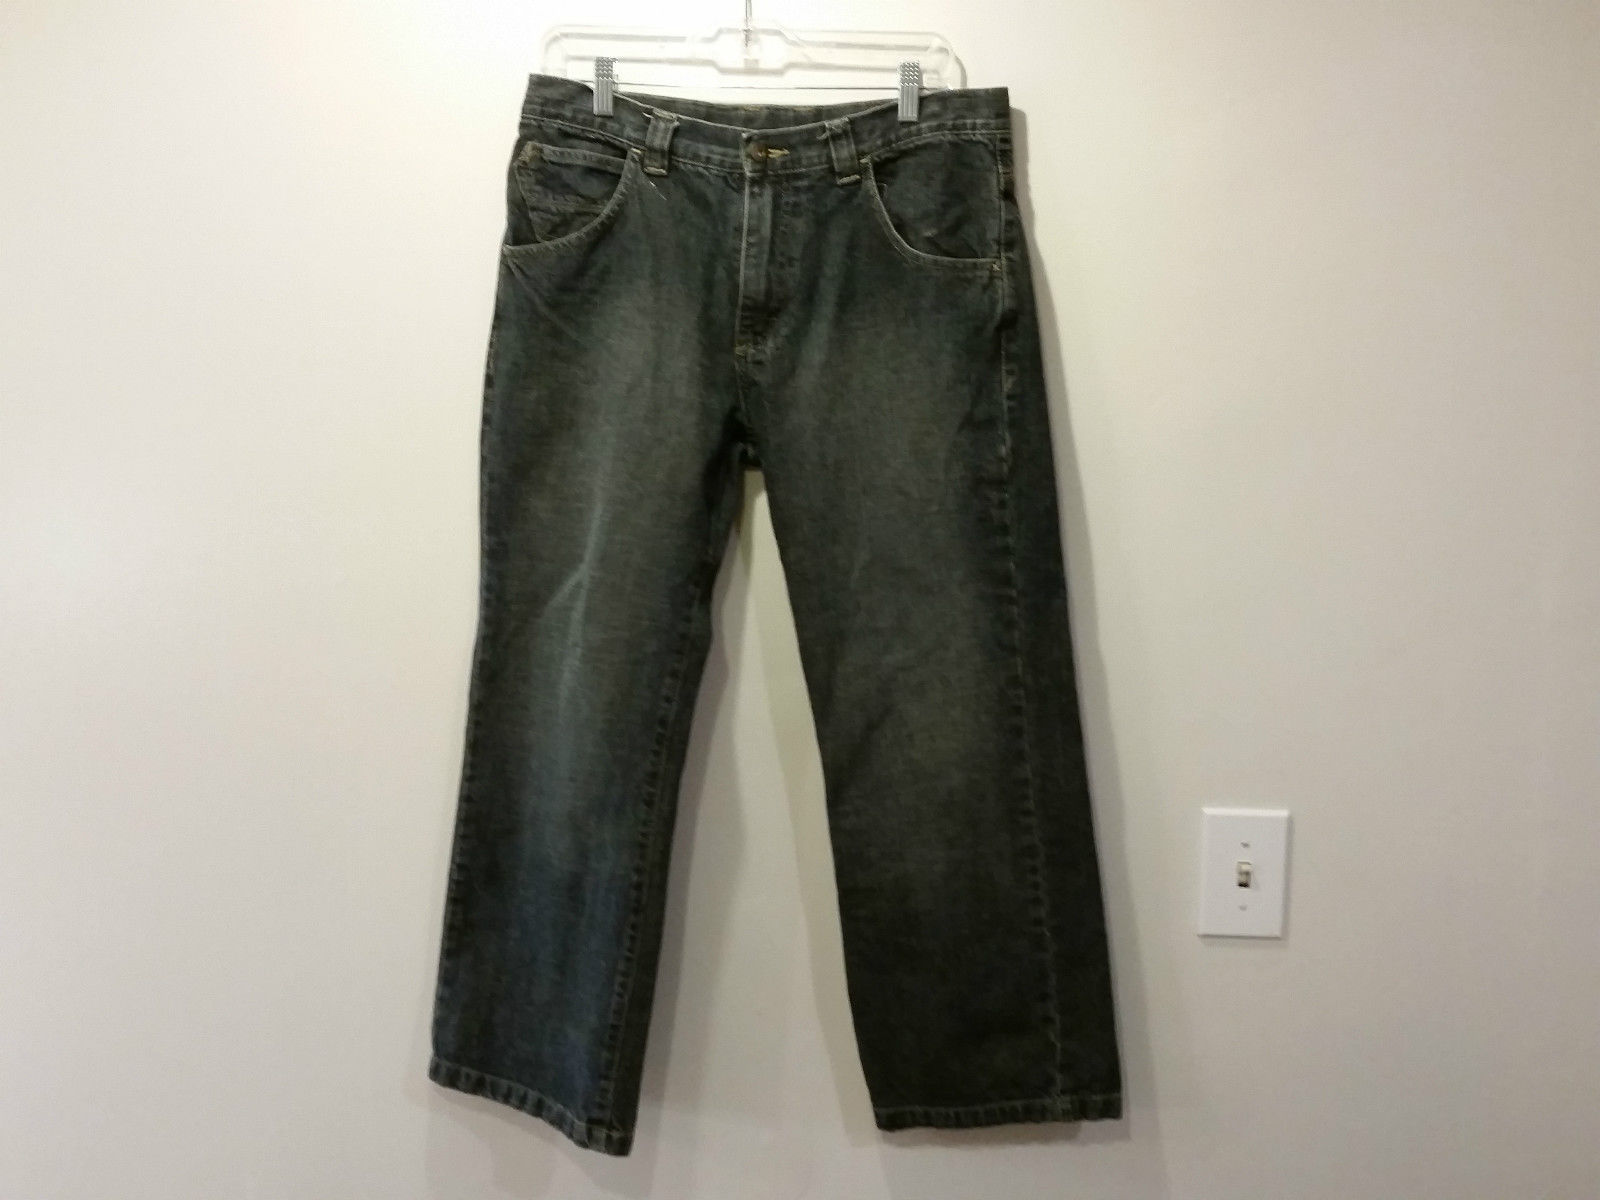 16 Husky WRG Jeans Company Dark Blue Jeans Front and Back Pockets Zipper Button